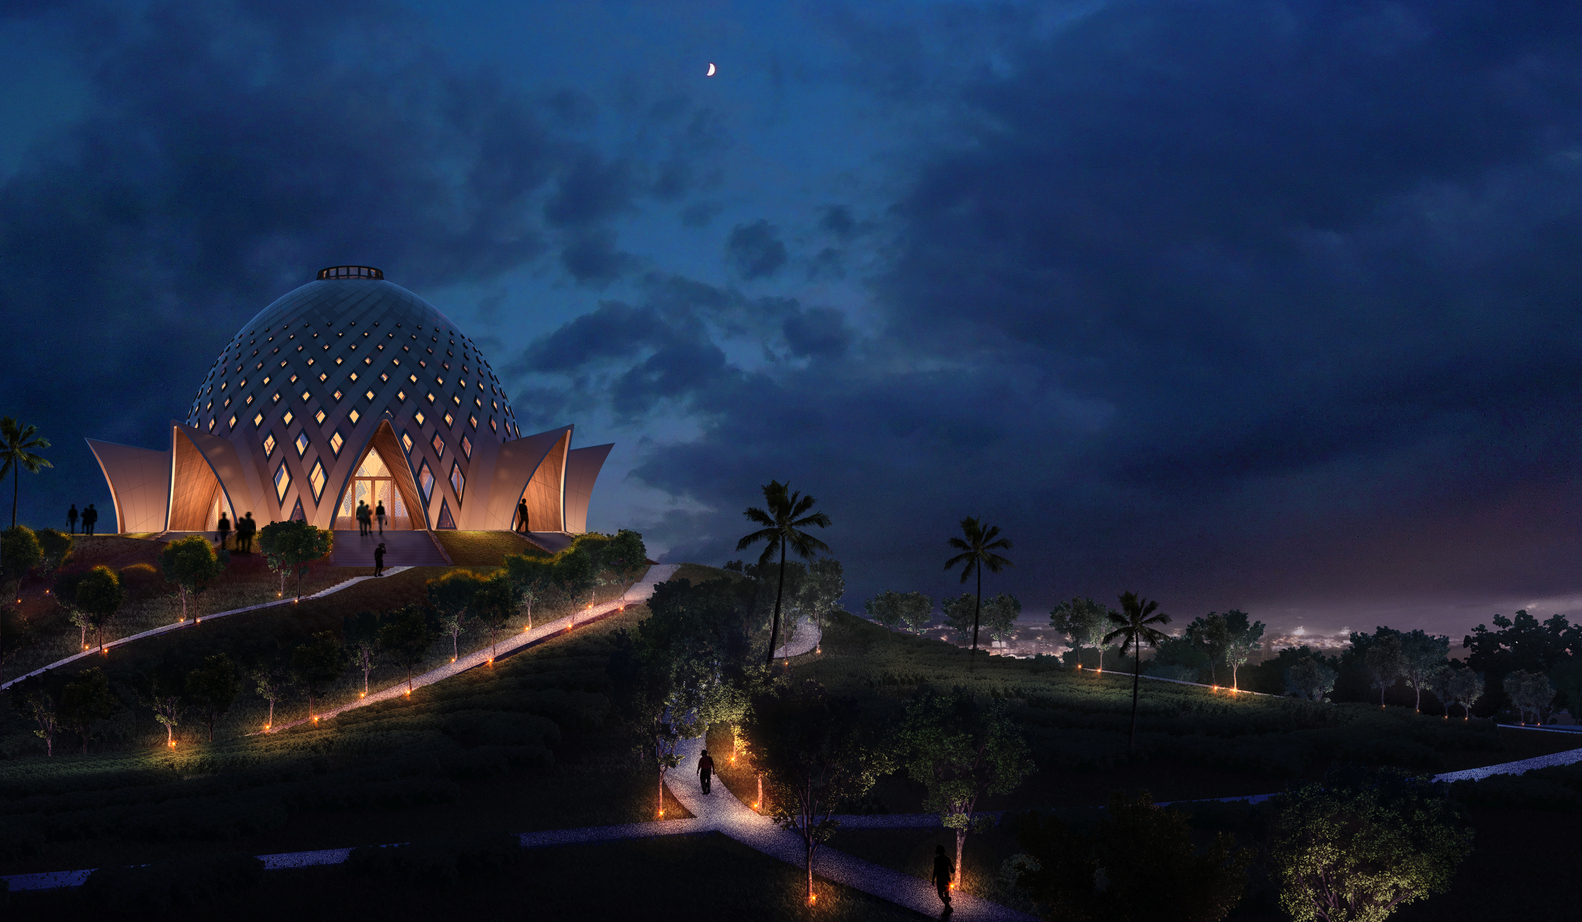 Gallery of Images Released for Bah House of Worship in Papua 1582x922